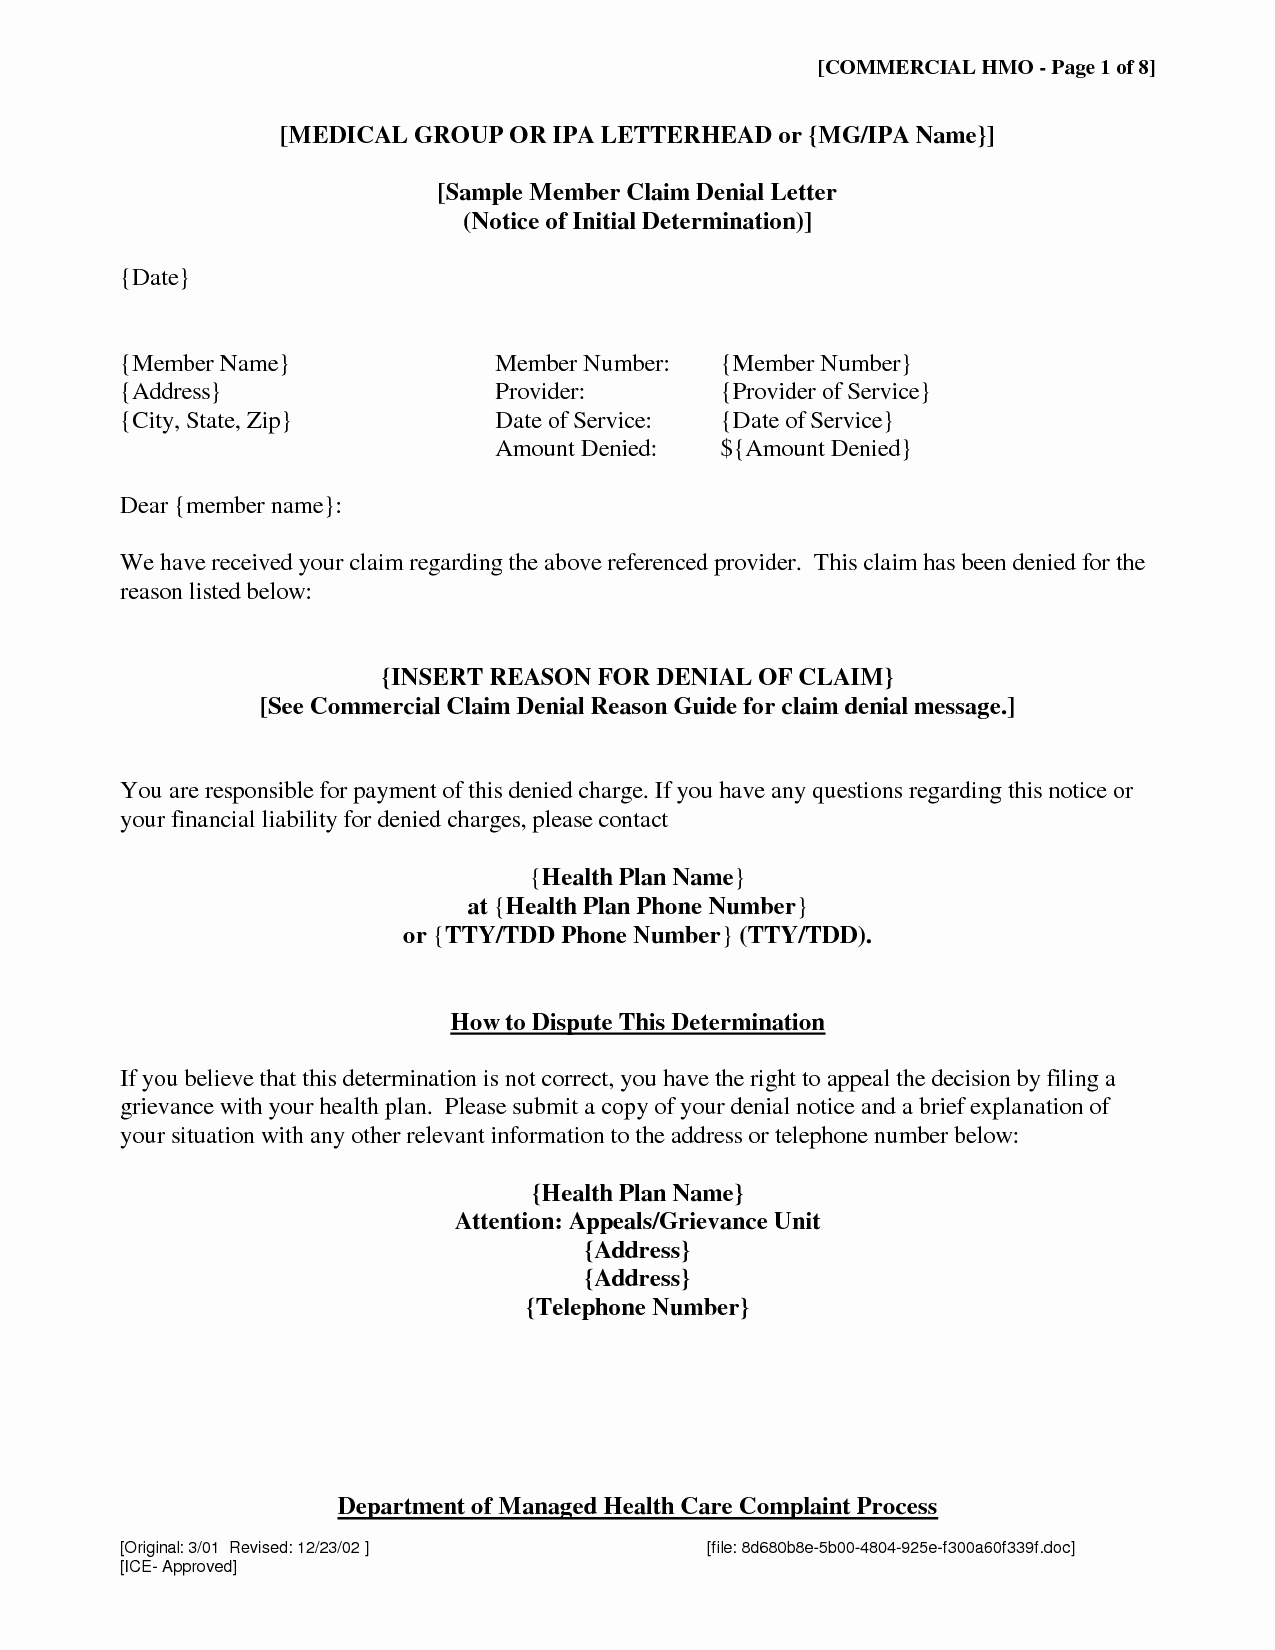 Fema Appeal Letter Template Elegant Insurance Denial Letter Free Printable Documents